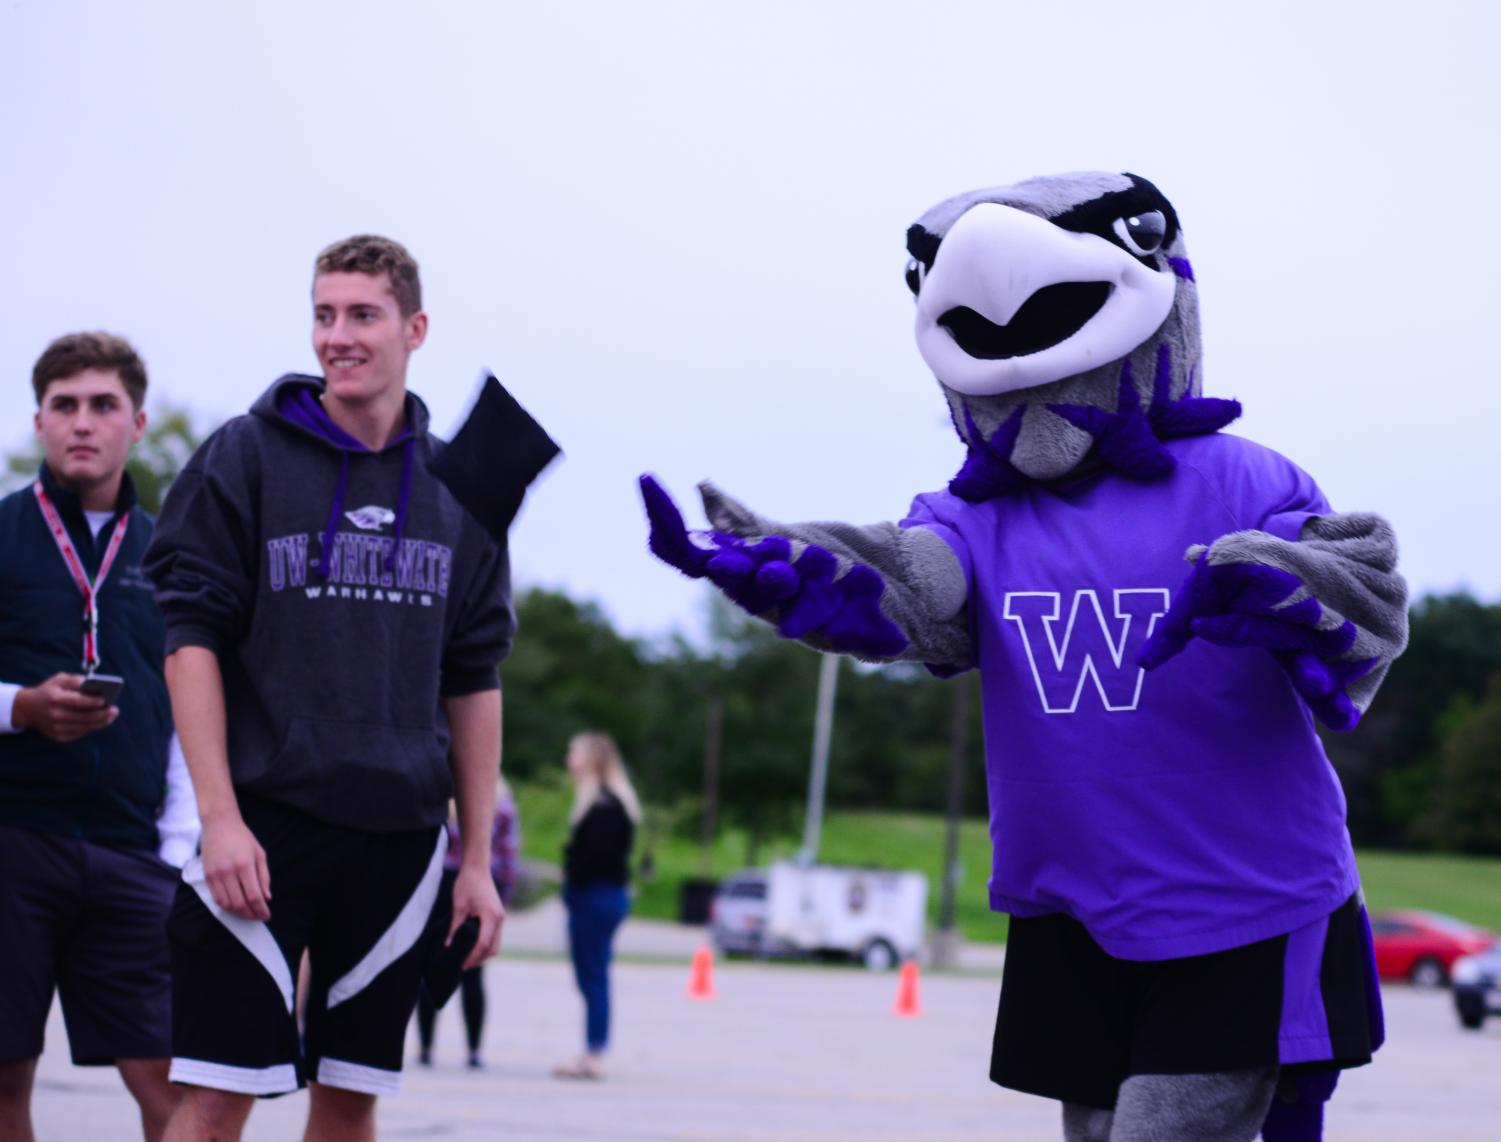 Willie the Warhawk plays a bag toss game with students and community members at his Birthday Bash.